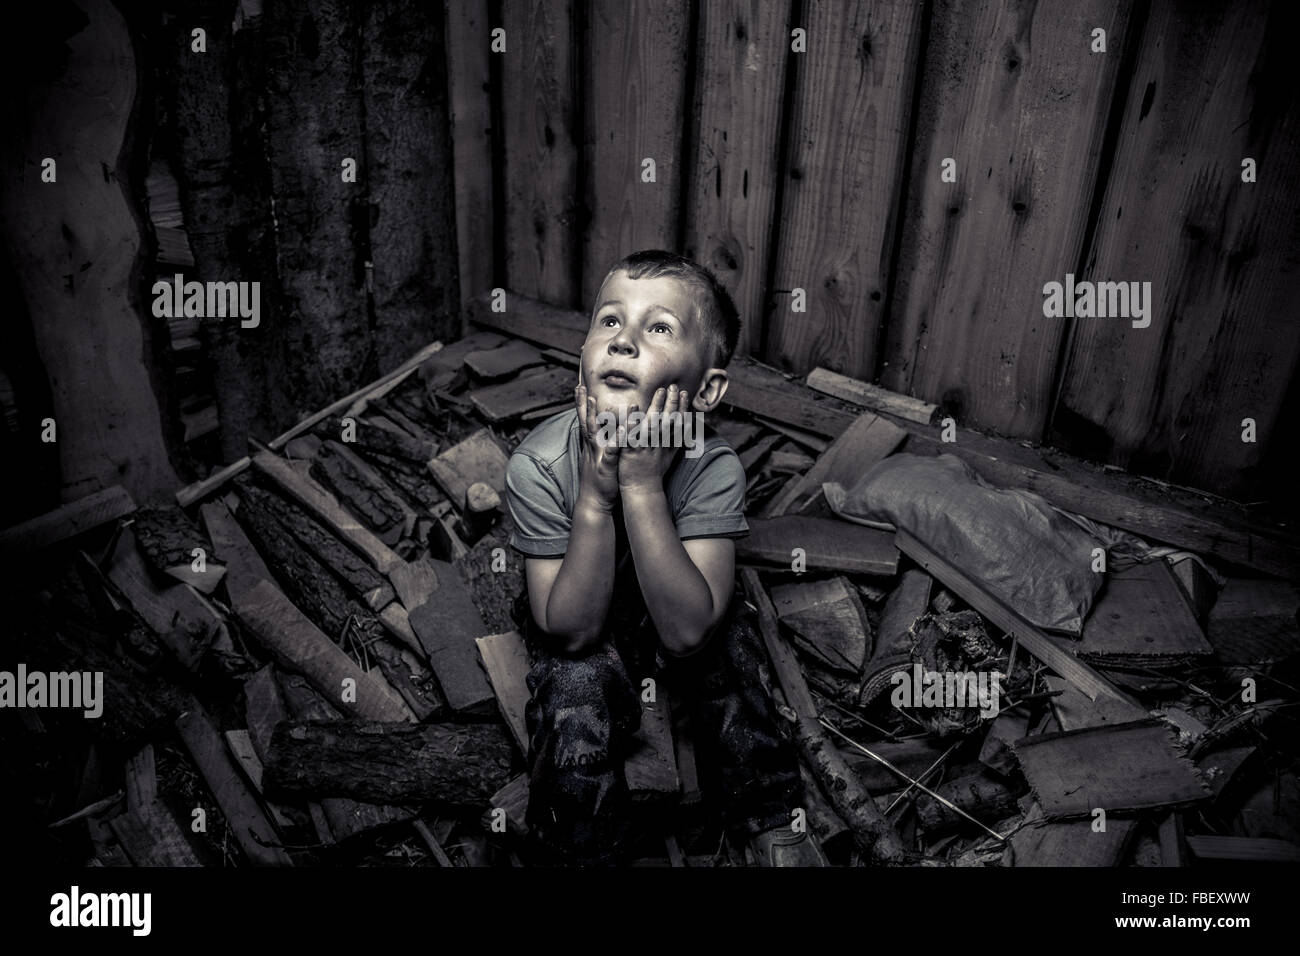 High Angle View Of Trapped Boy Sitting On Rubble In Room - Stock Image